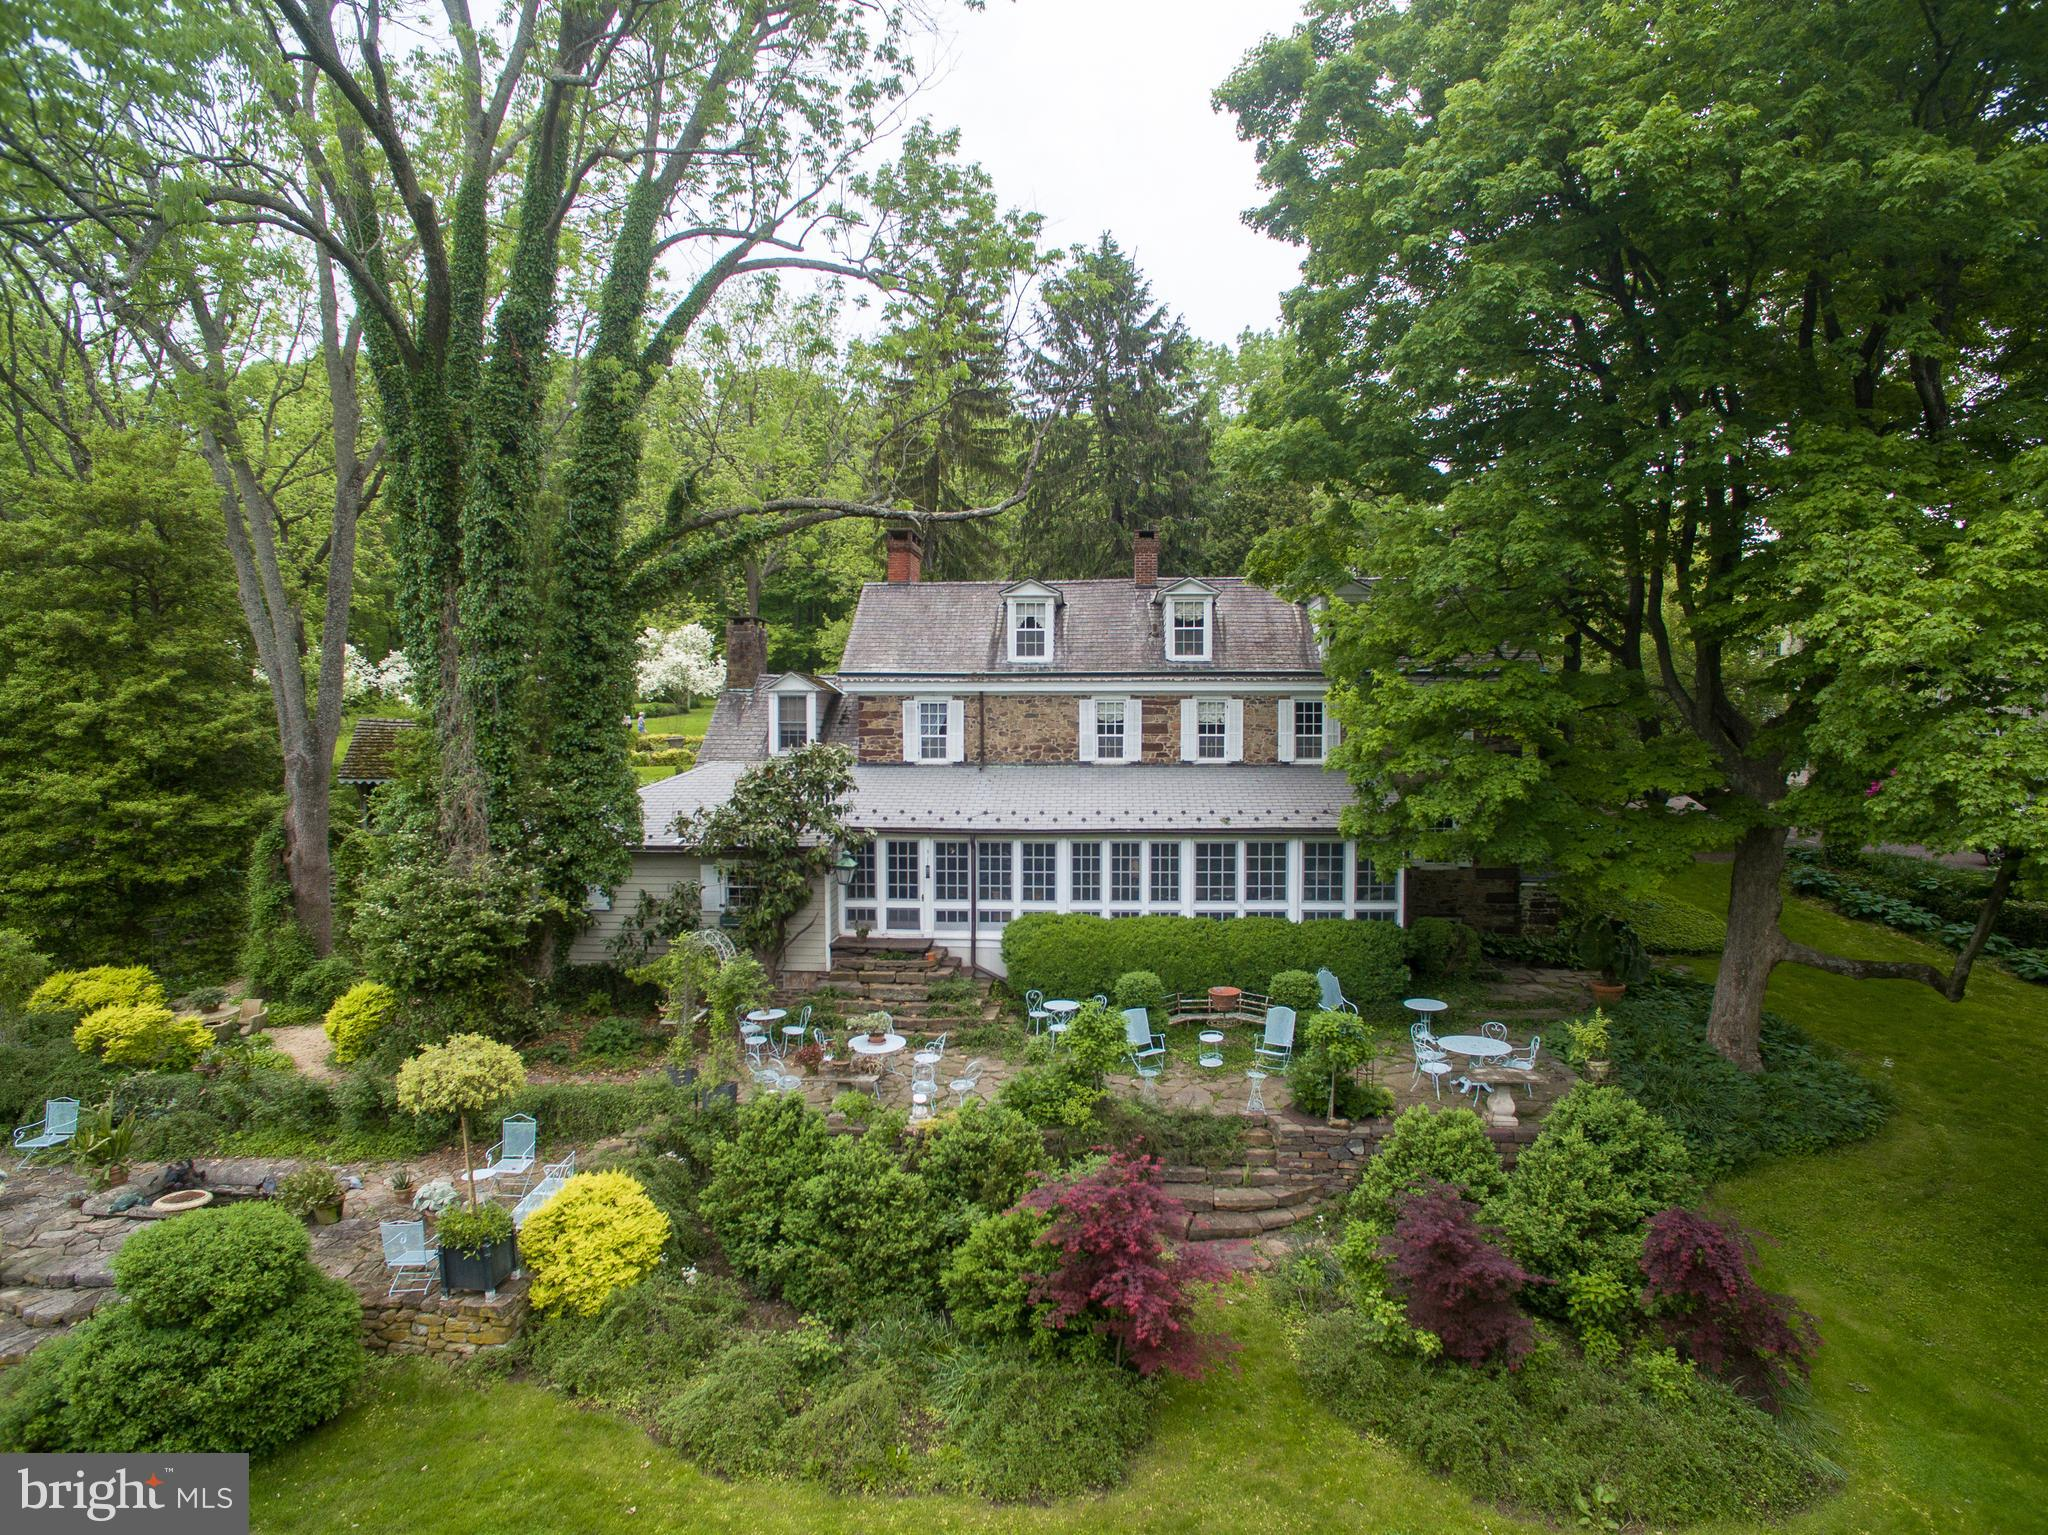 60 THOMPSON MILL ROAD, NEWTOWN, PA 18940